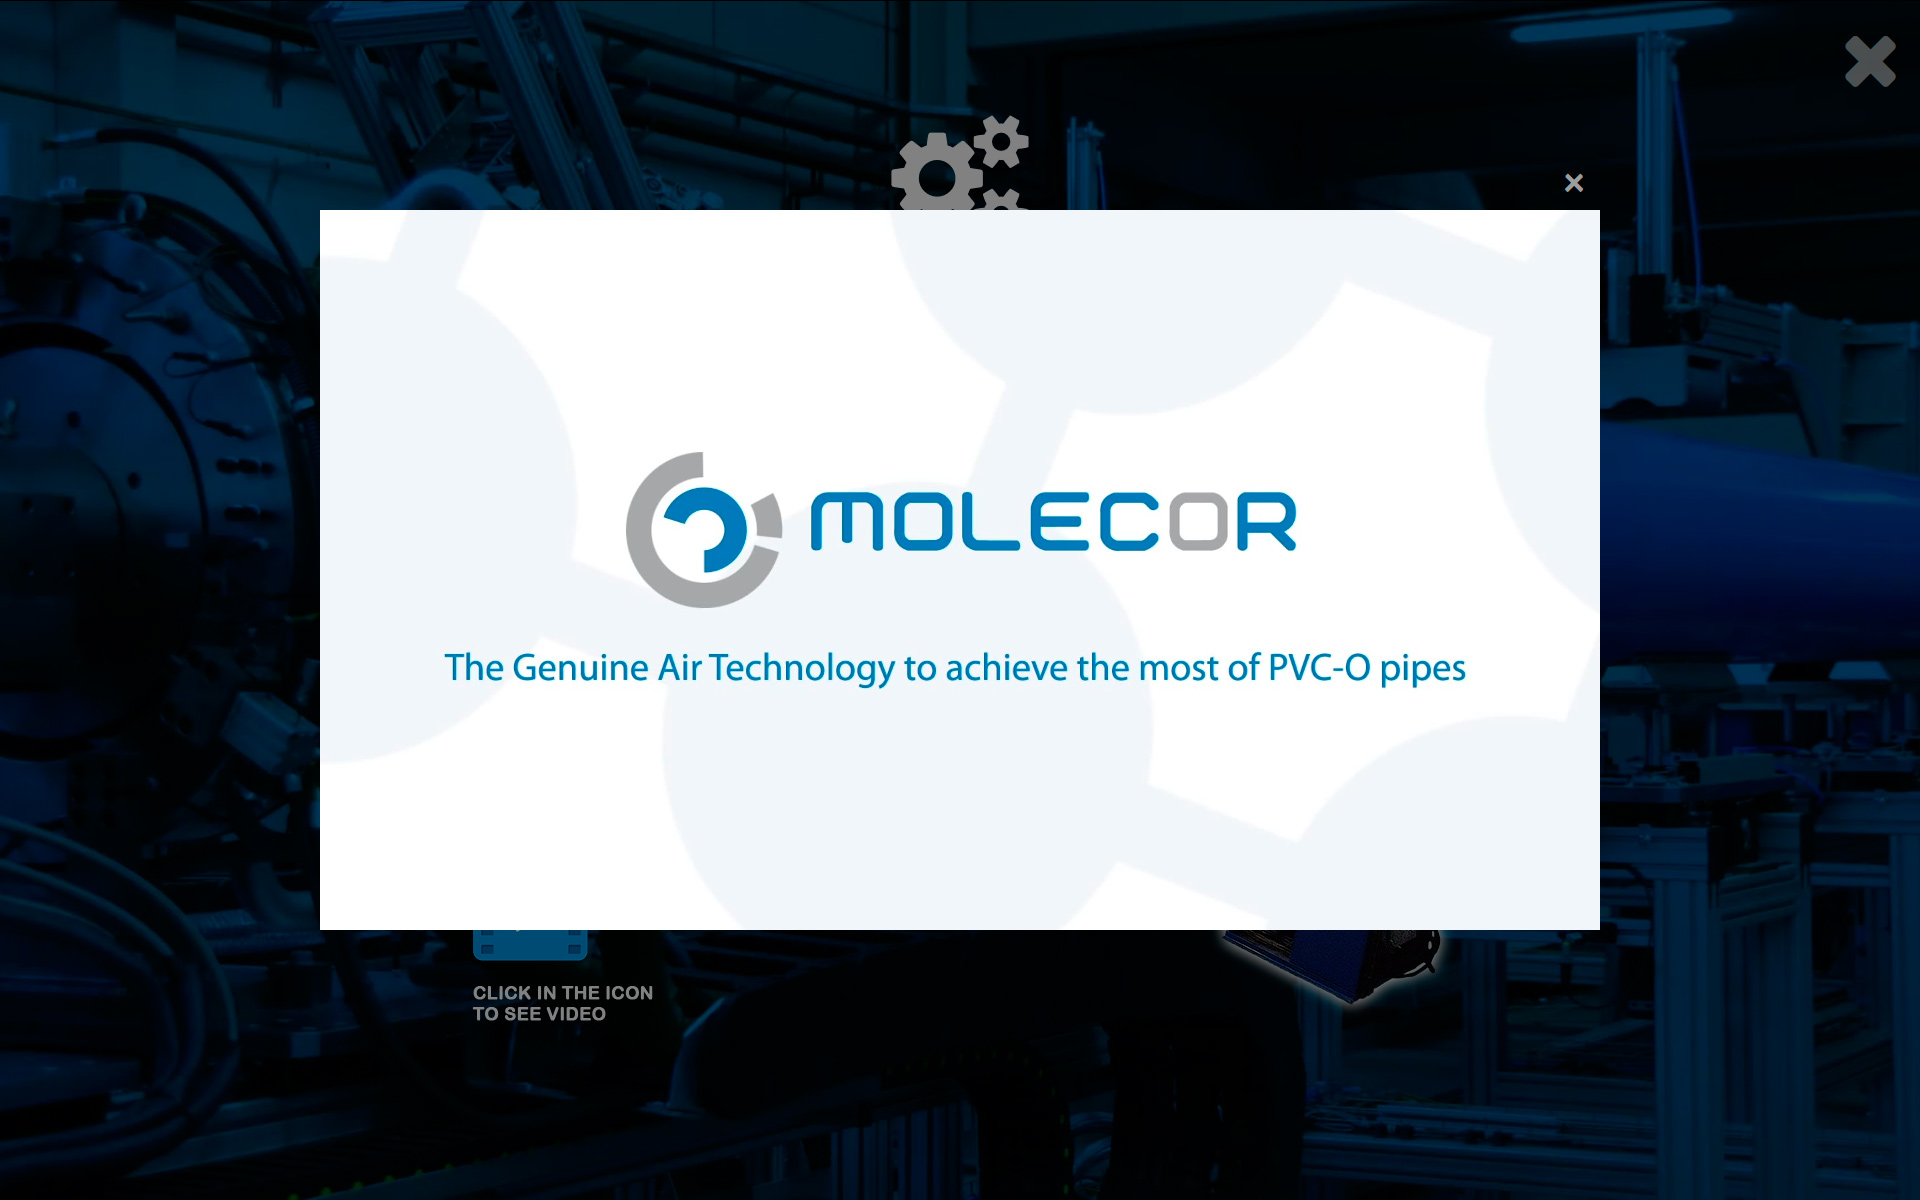 Technology Video - Molecor Multimedia